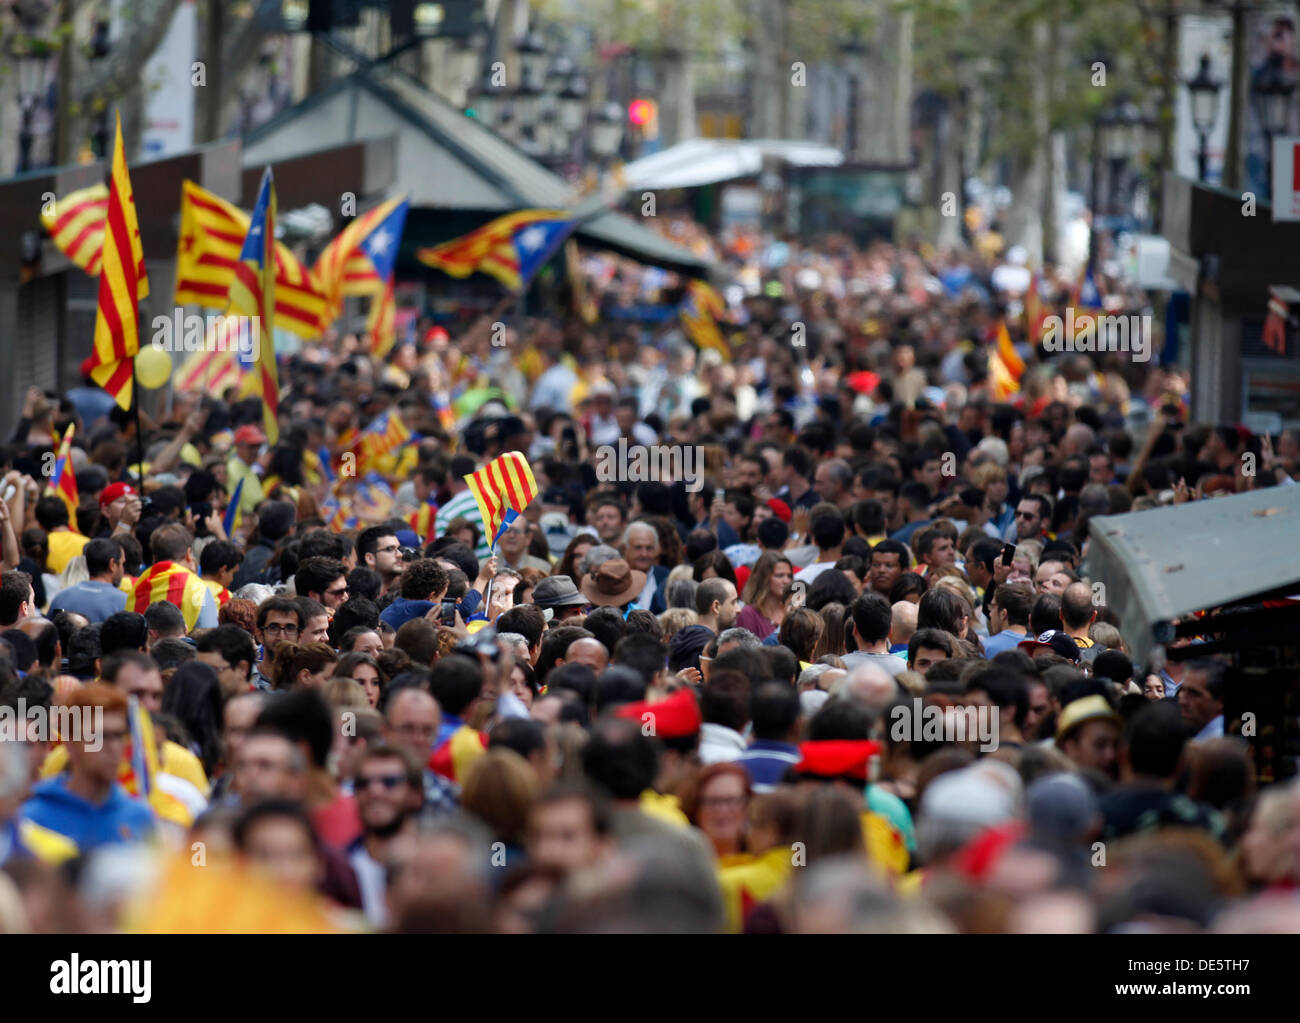 Barcelona, Spain. 11th September 2013. Demonstrators march during The National Day of Catalonia on September 11, 2013 in Barcelona, Spain. The Spanish region of Catalonia has been celebrating its national day known as La Diada amid demonstrations and renewed calls for independence. In an attempt to muster support for secession hundreds of thousands of people have formed a 400km long human chain across the region to press for a vote on independence from Spain. © dpa picture alliance/Alamy Live News - Stock Image